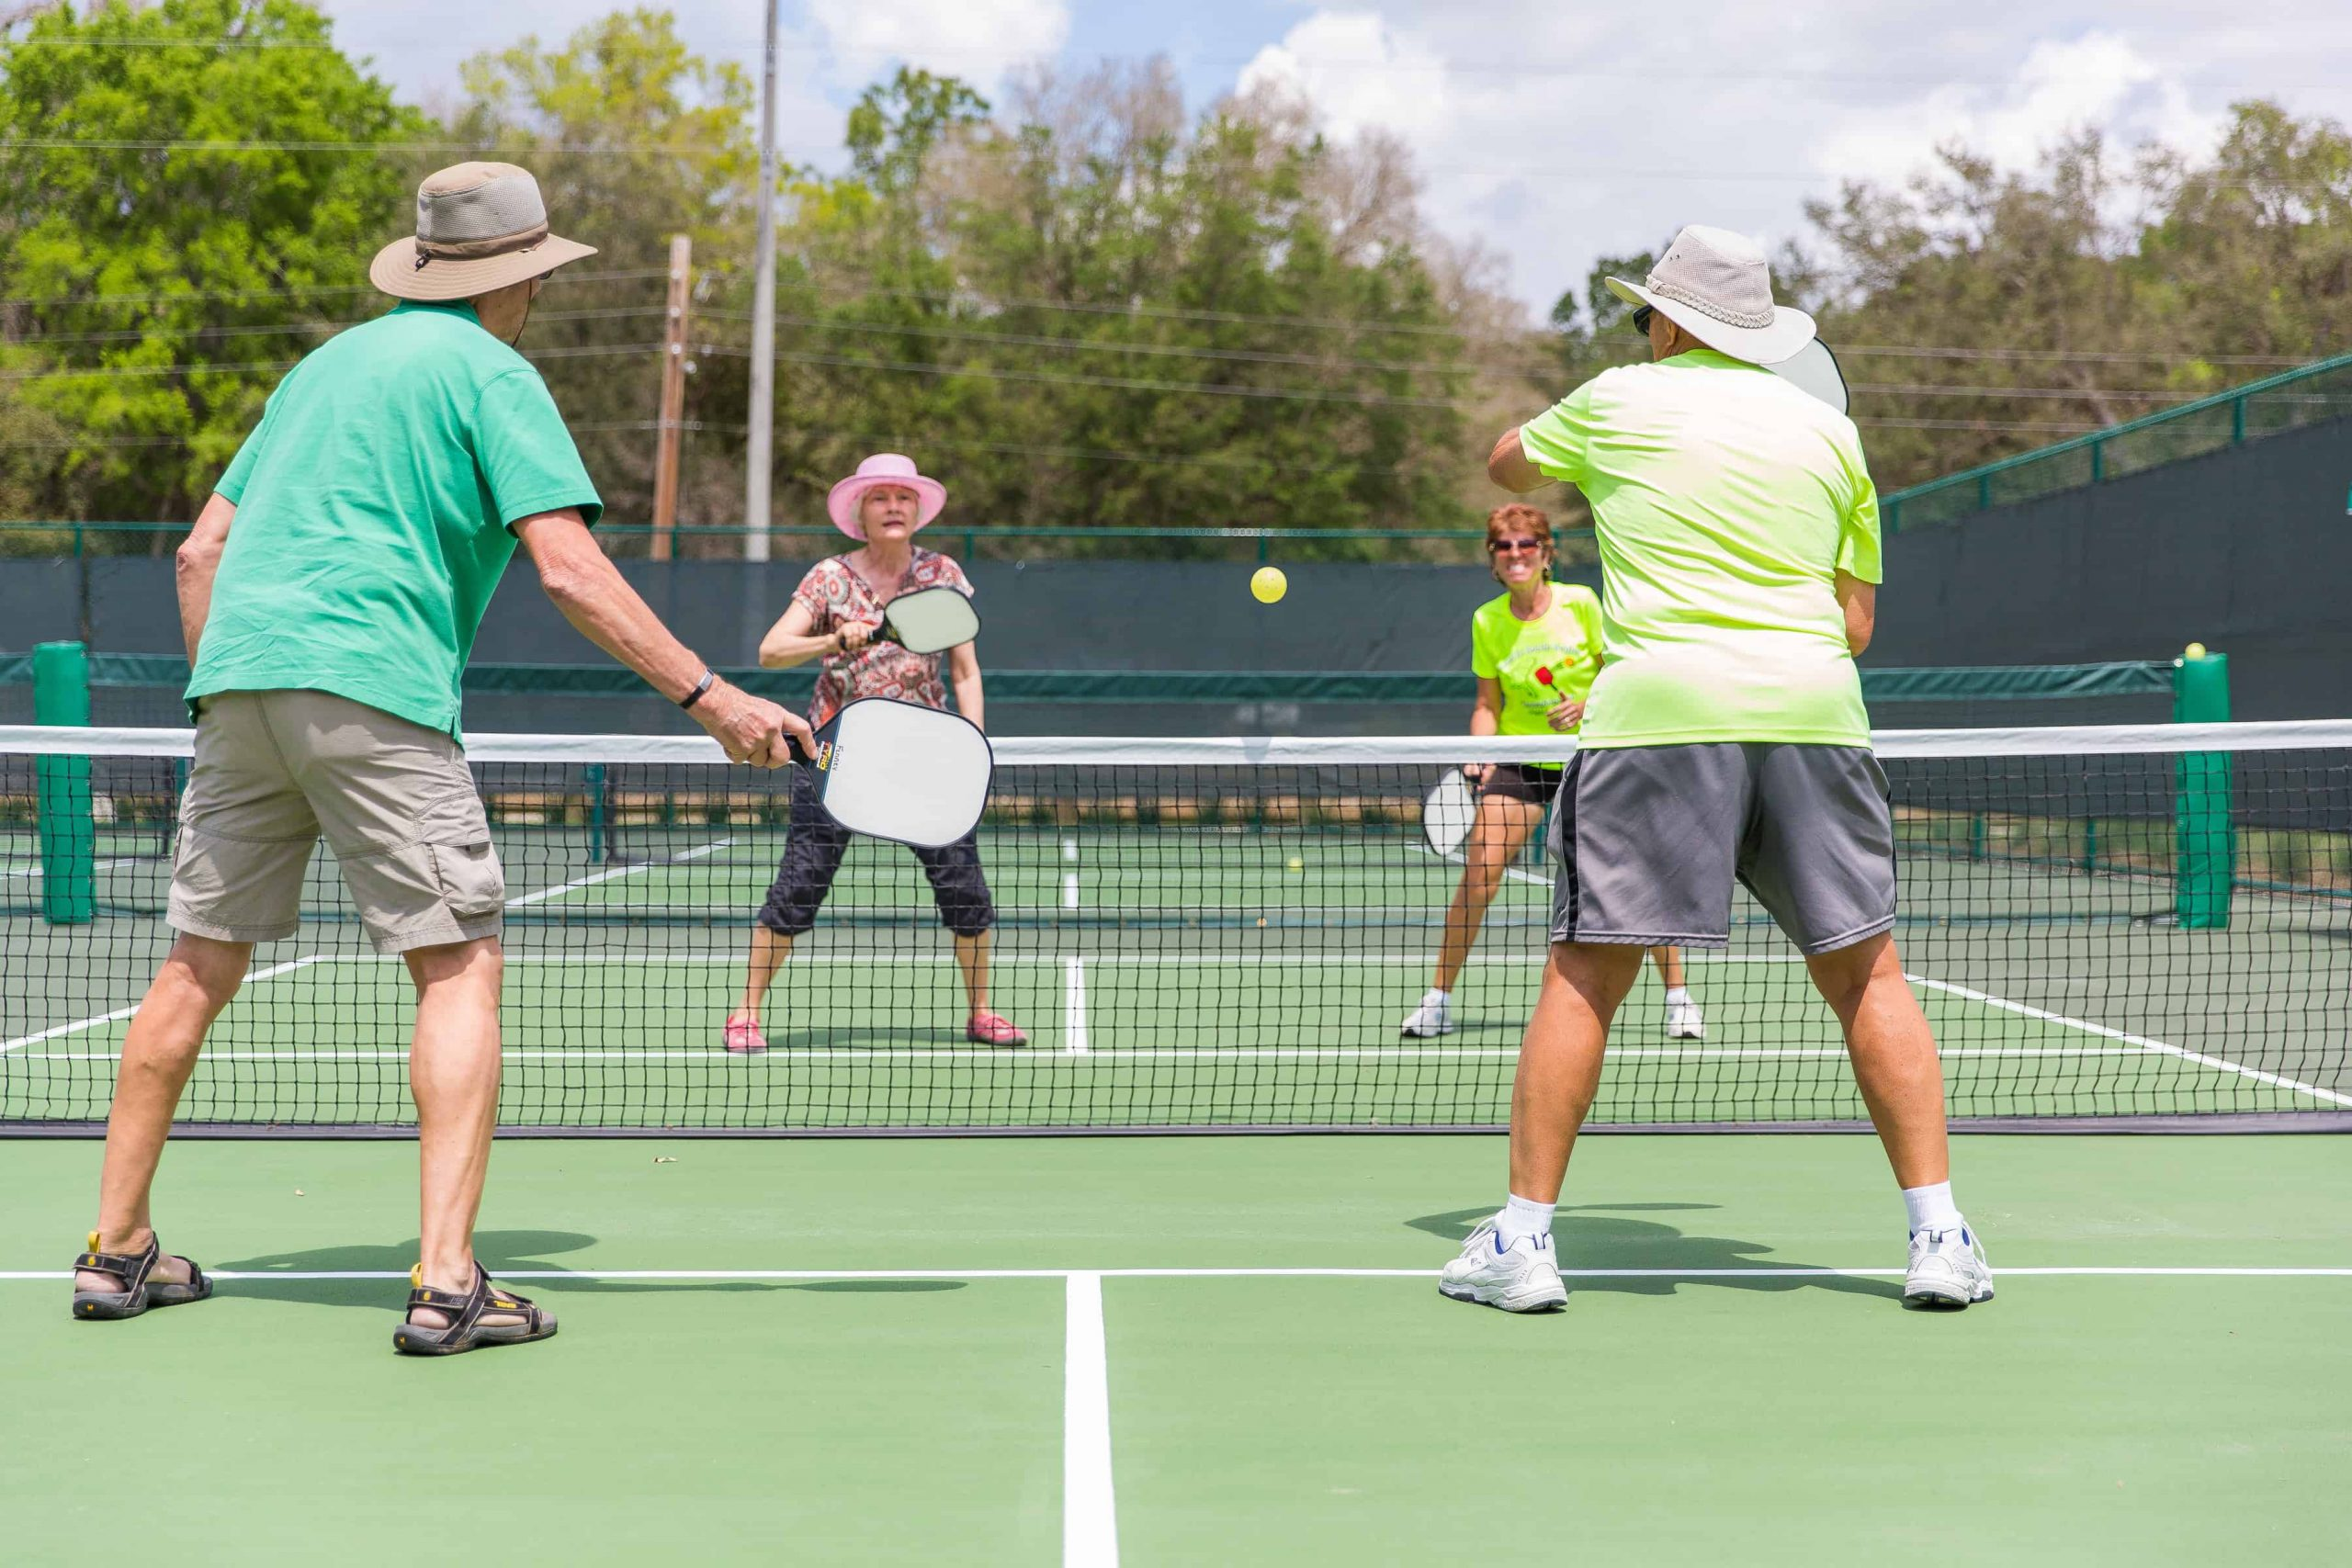 10 Fast-Moving Pickleball Paddles Reviews – Serve, Hit, Volley, and Dink in 2021